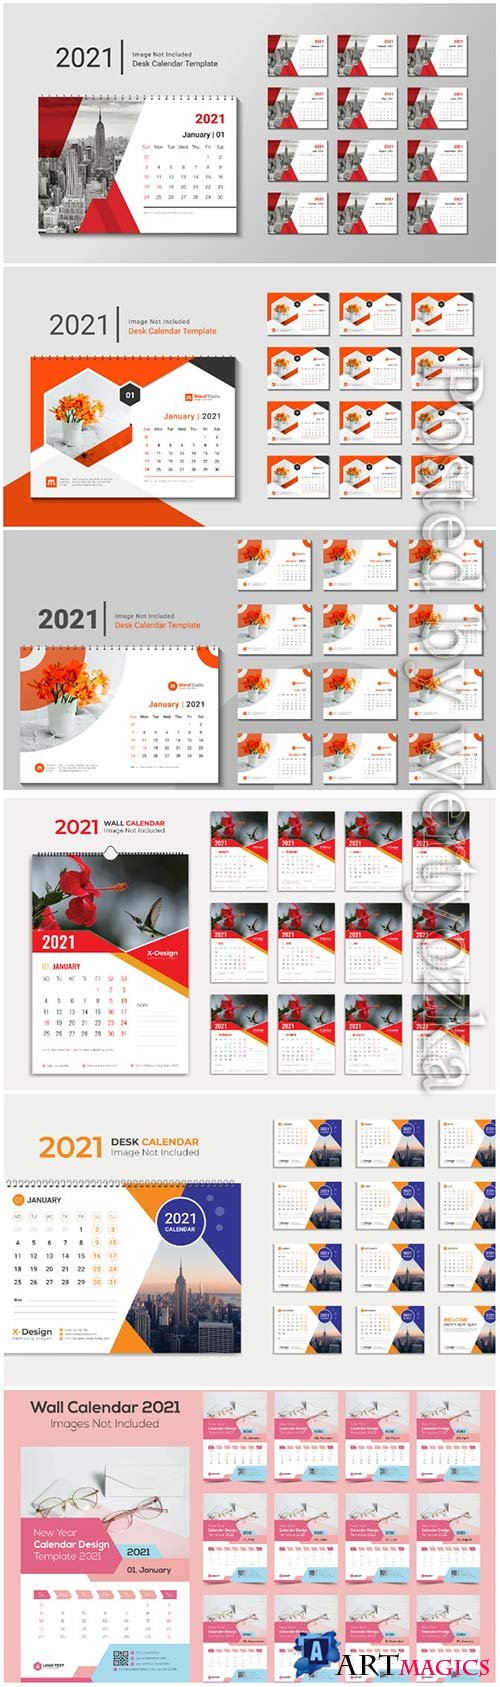 Desk calendar 2021 template design for new year vol 2